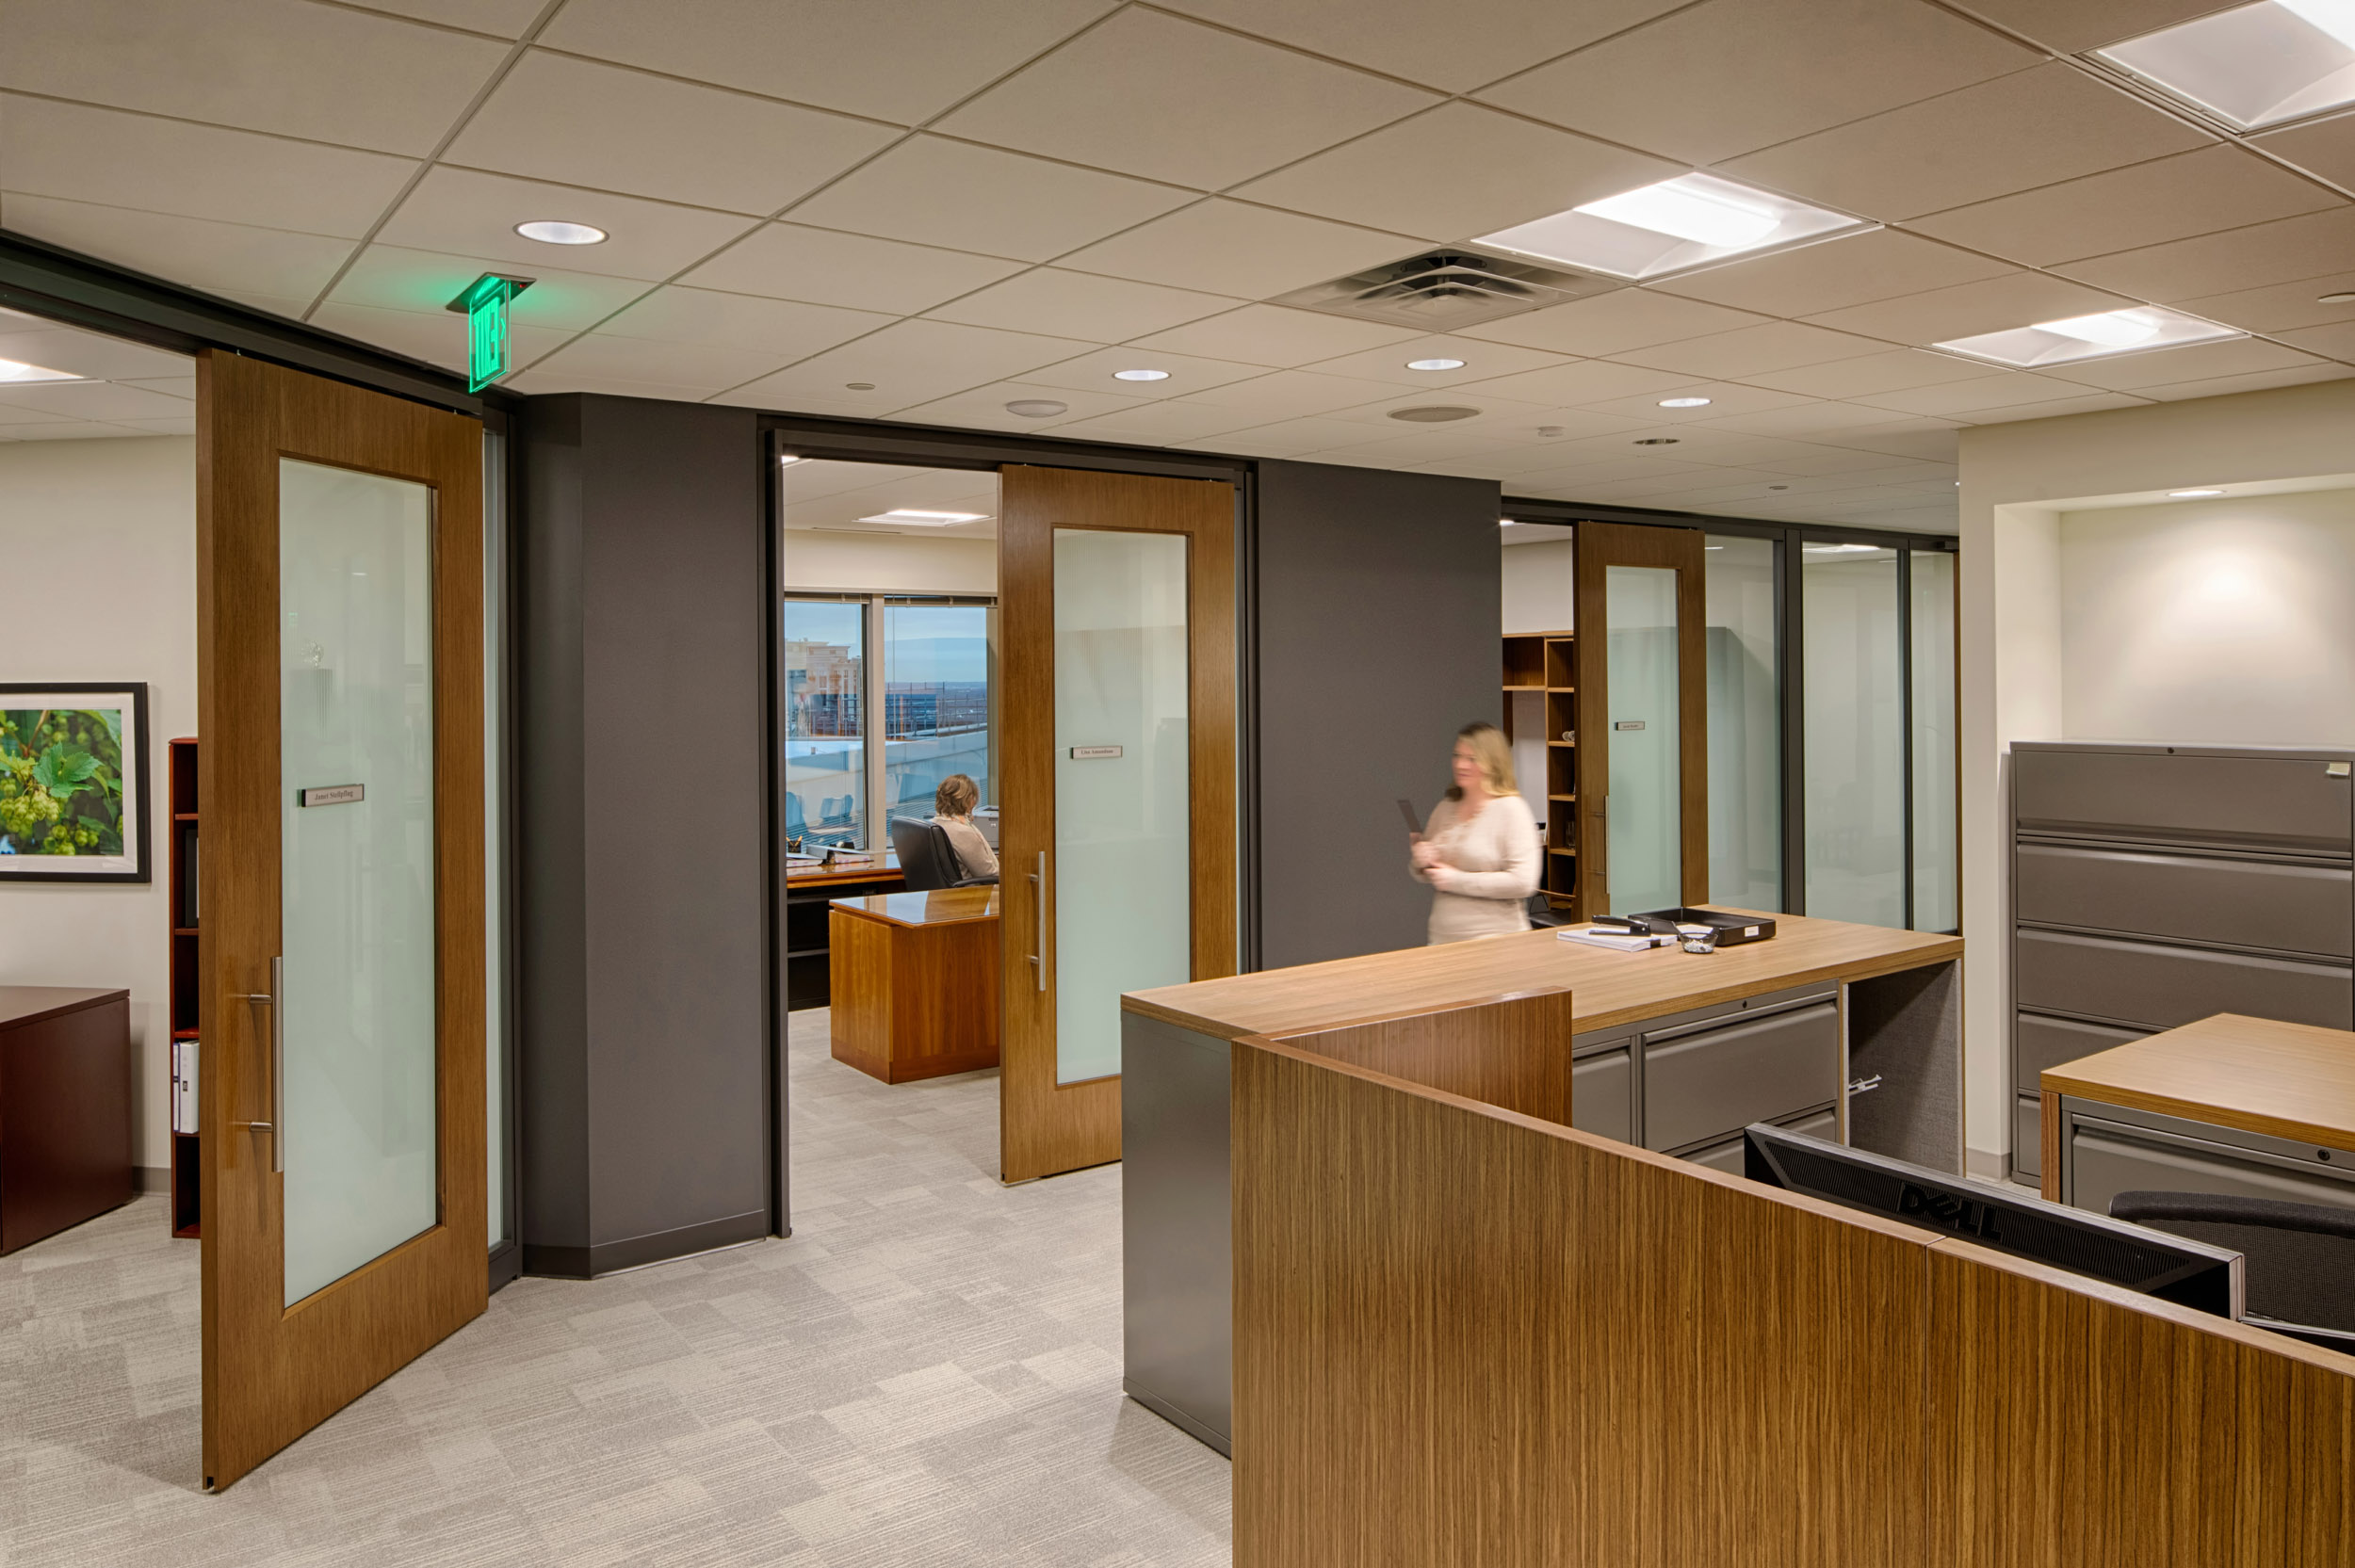 Corporate architectural photography of a law firm interior photos by Silverman Be Remarkable